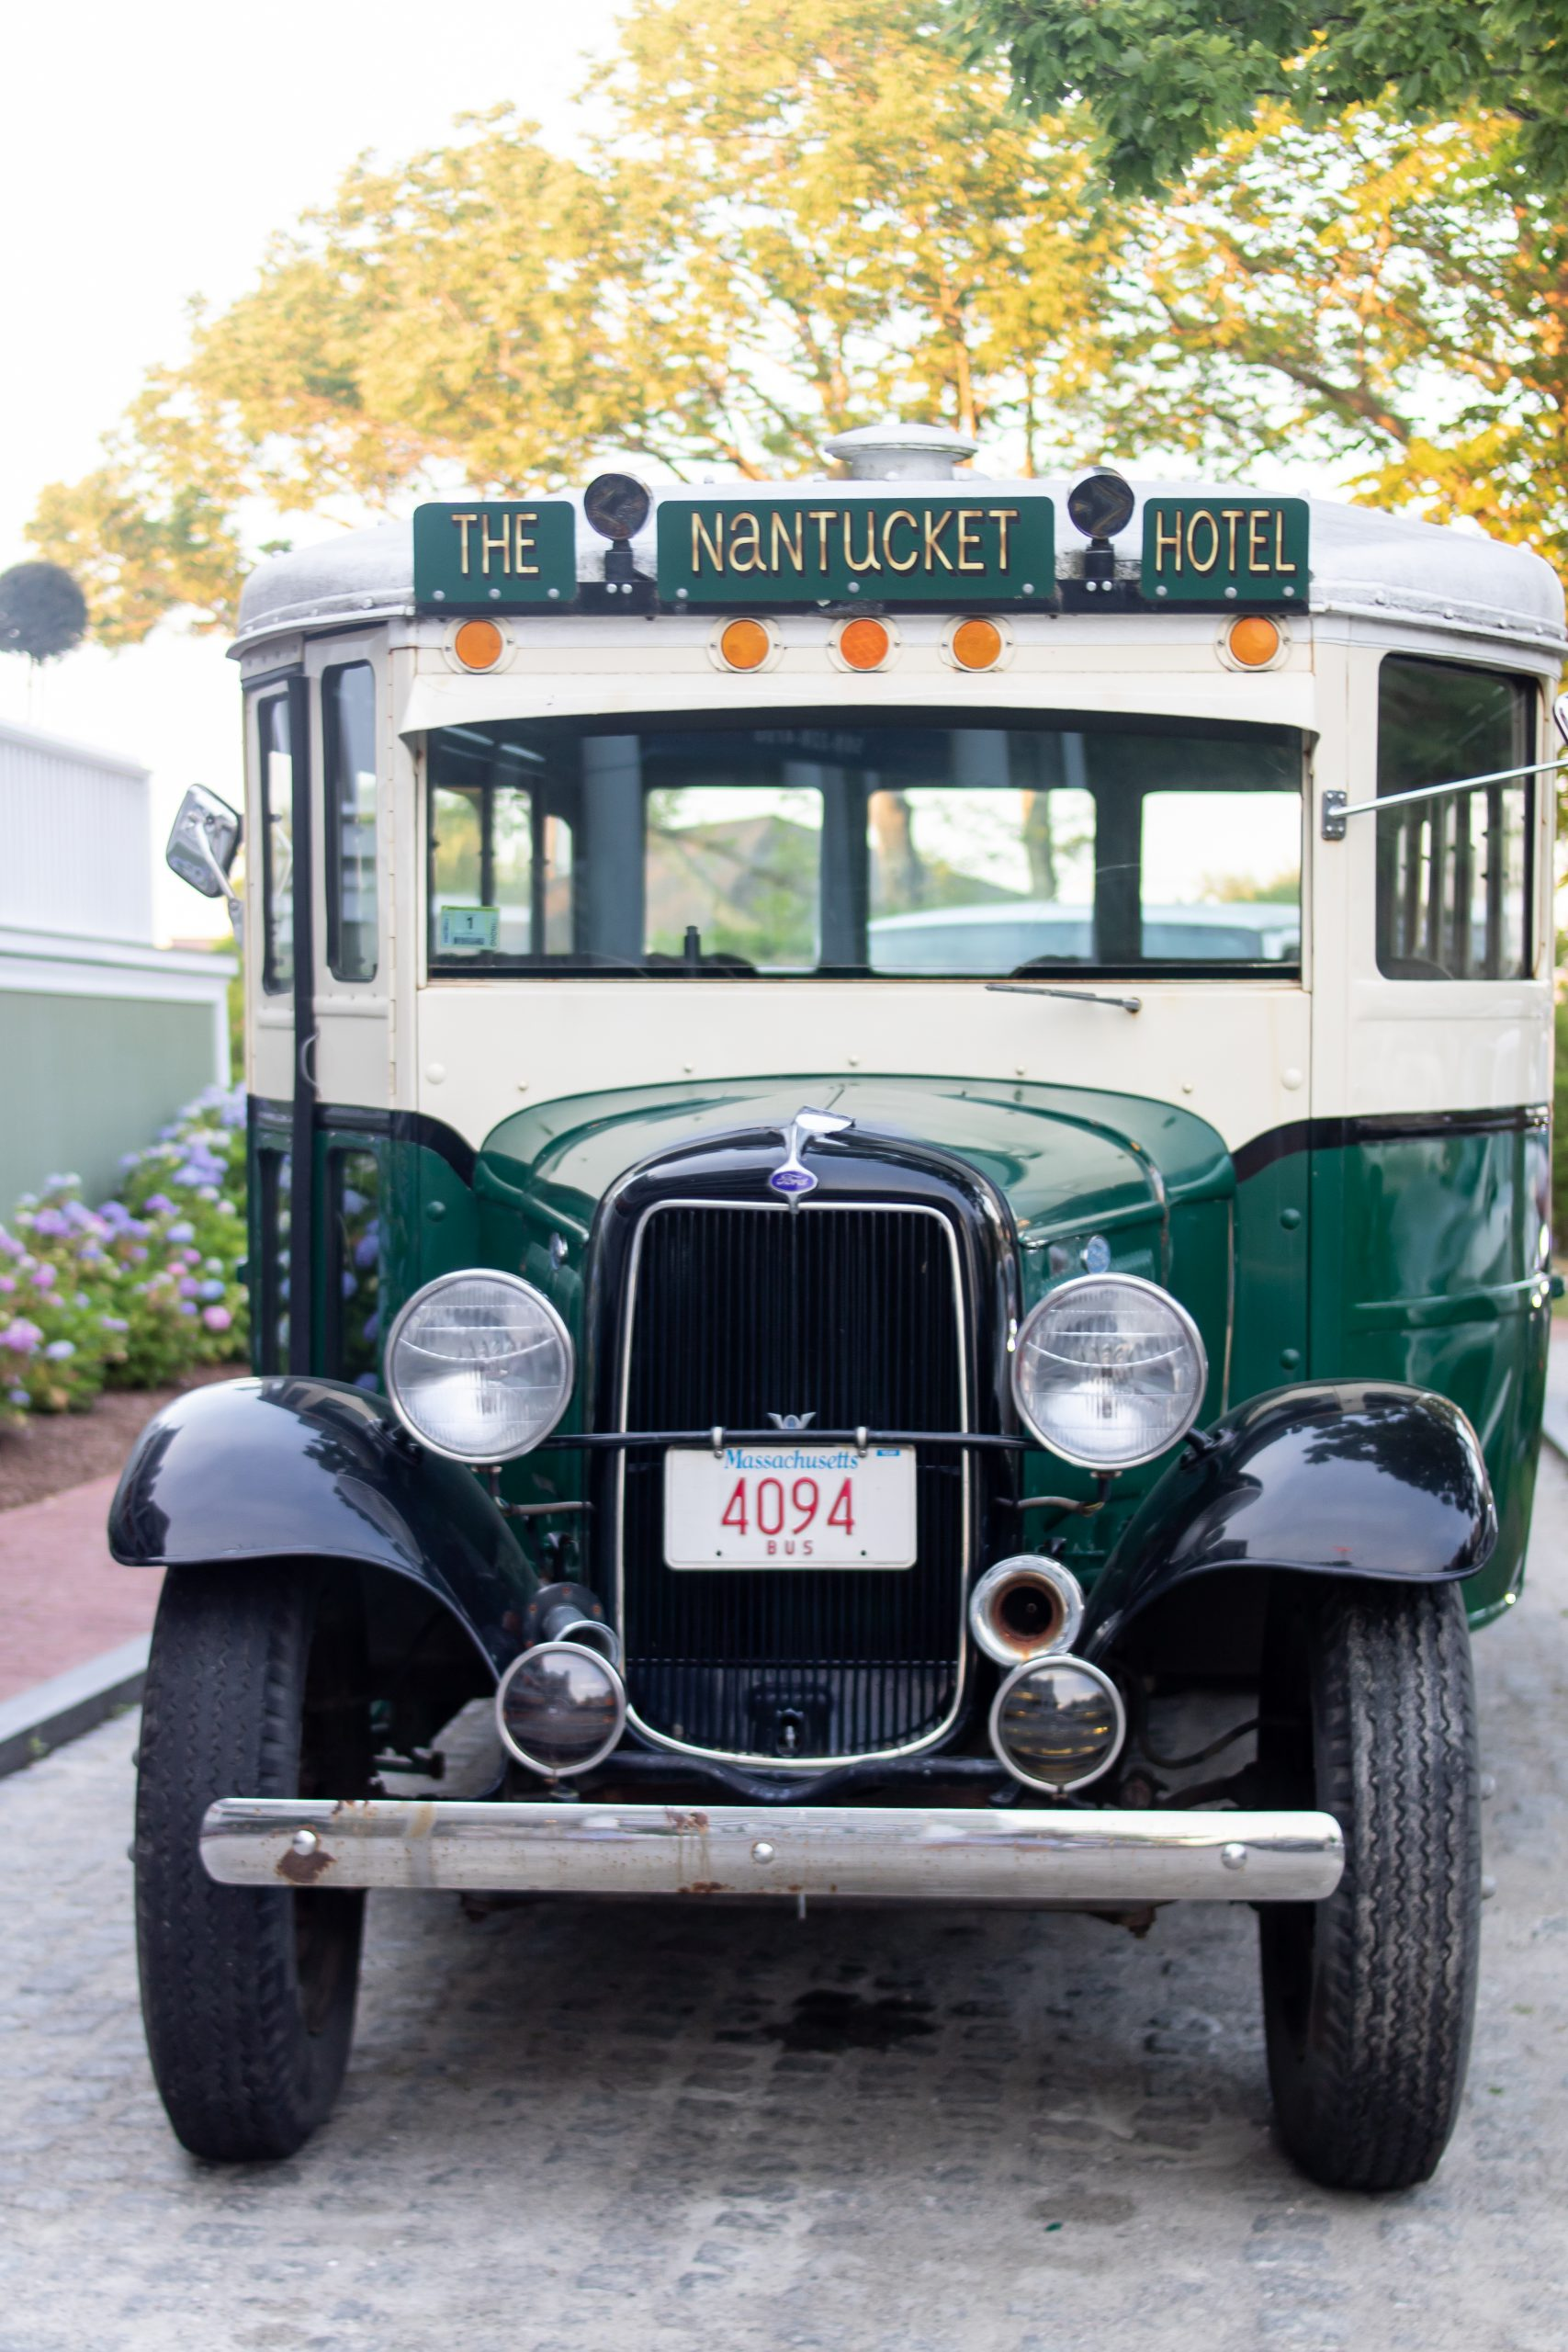 The Nantucket Hotel and Resort antique bus built in 1920s